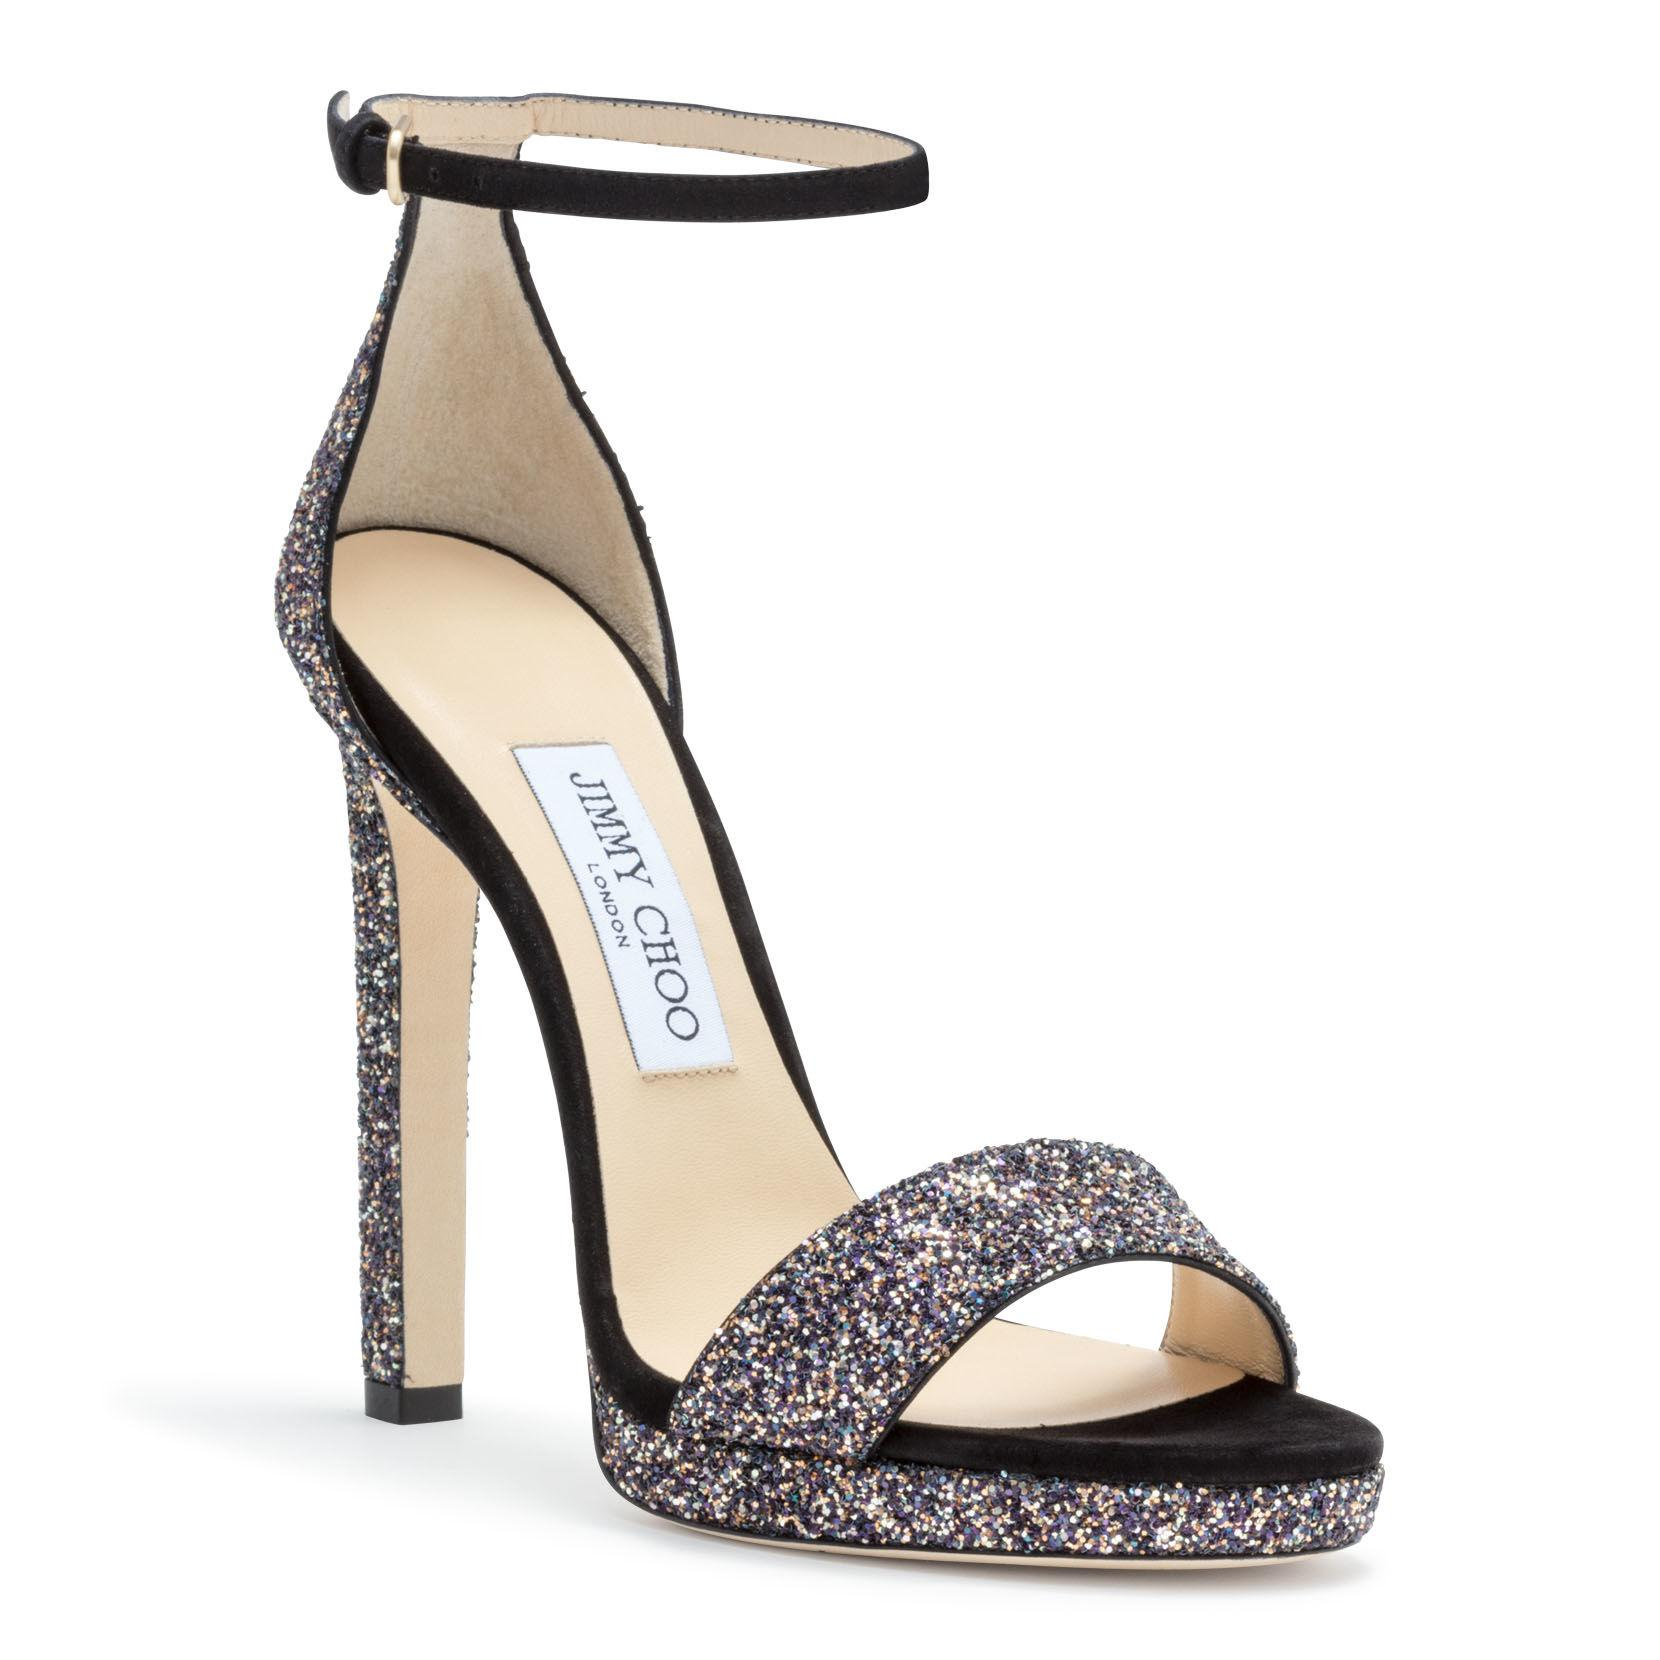 ae6c4064540 Jimmy Choo - Metallic Misty 120 Glittered Leather And Suede Platform Sandals  - Lyst. View fullscreen